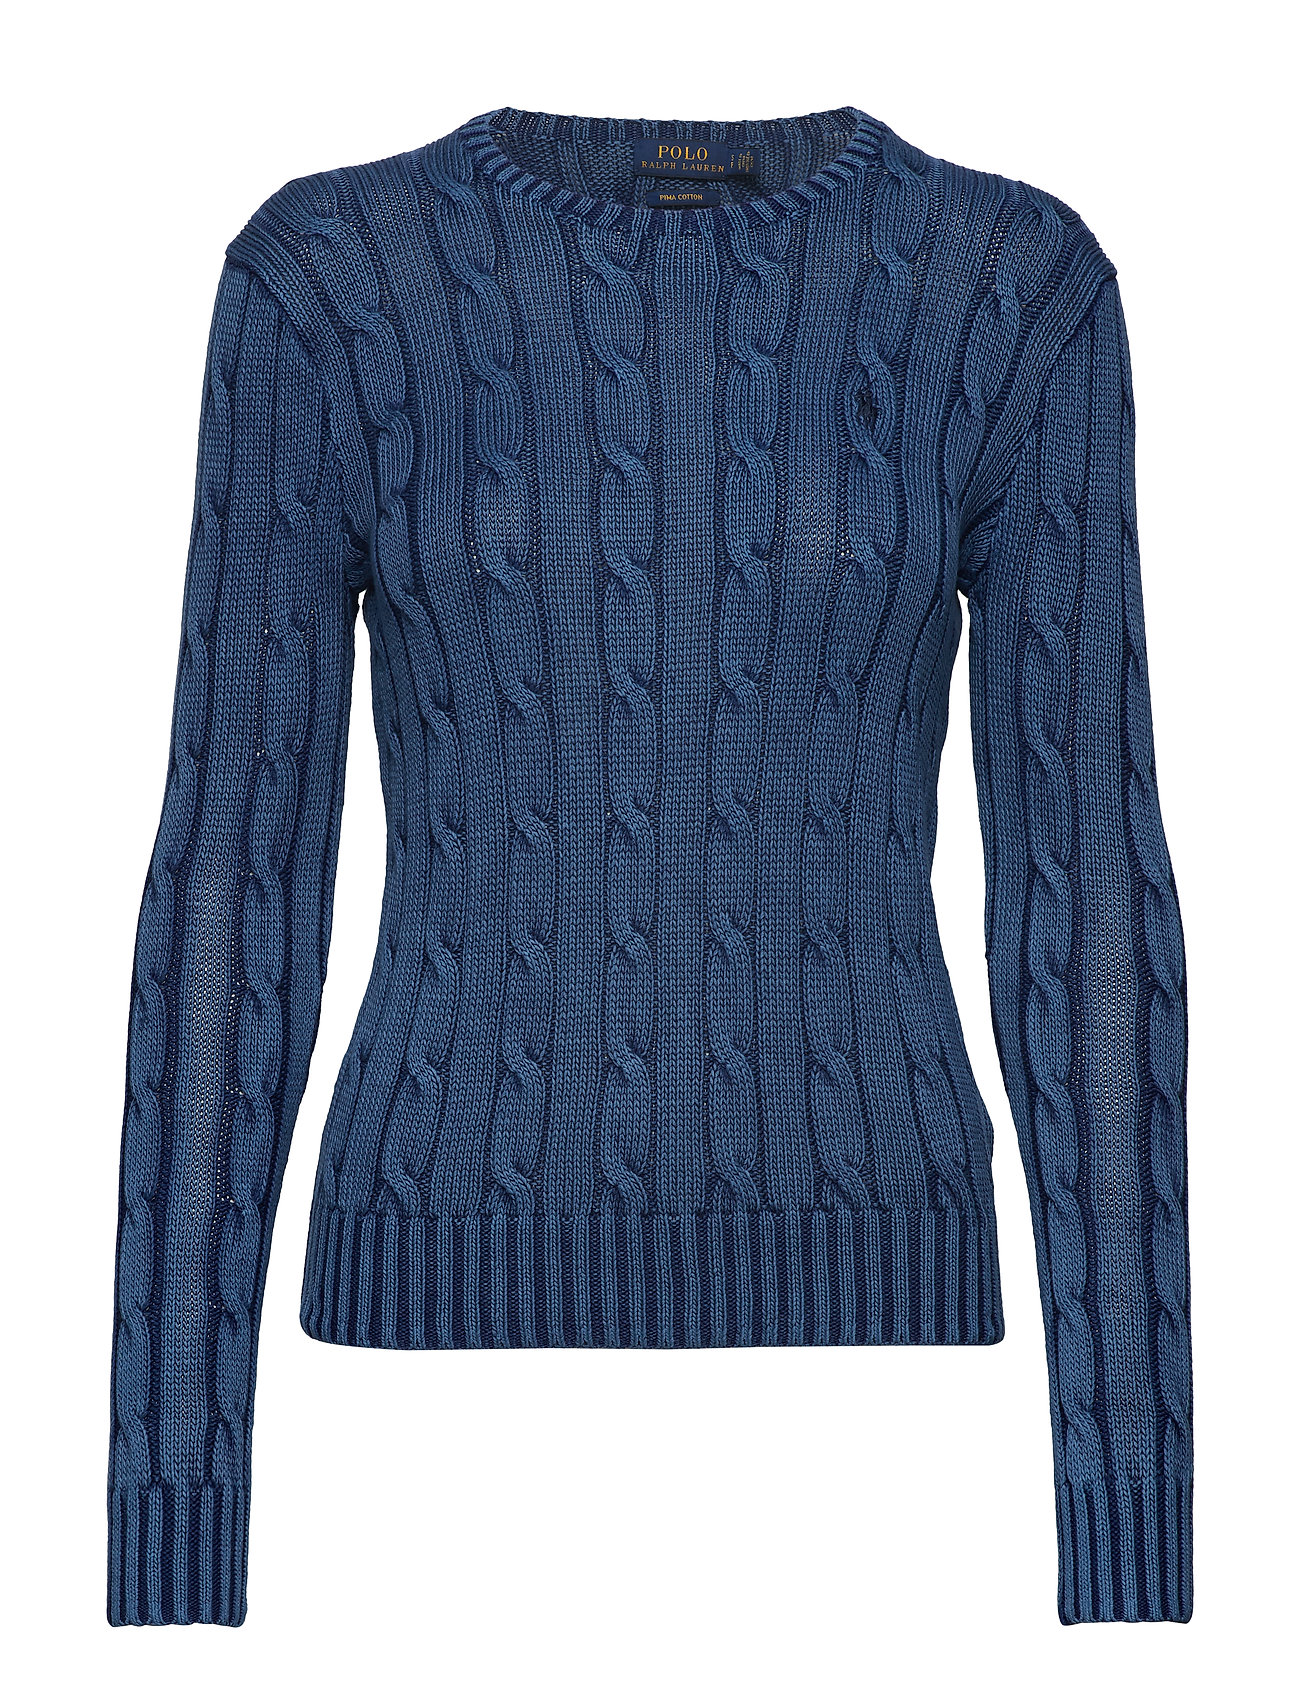 Polo Ralph Lauren Cable-Knit Cotton Sweater - INDIGO